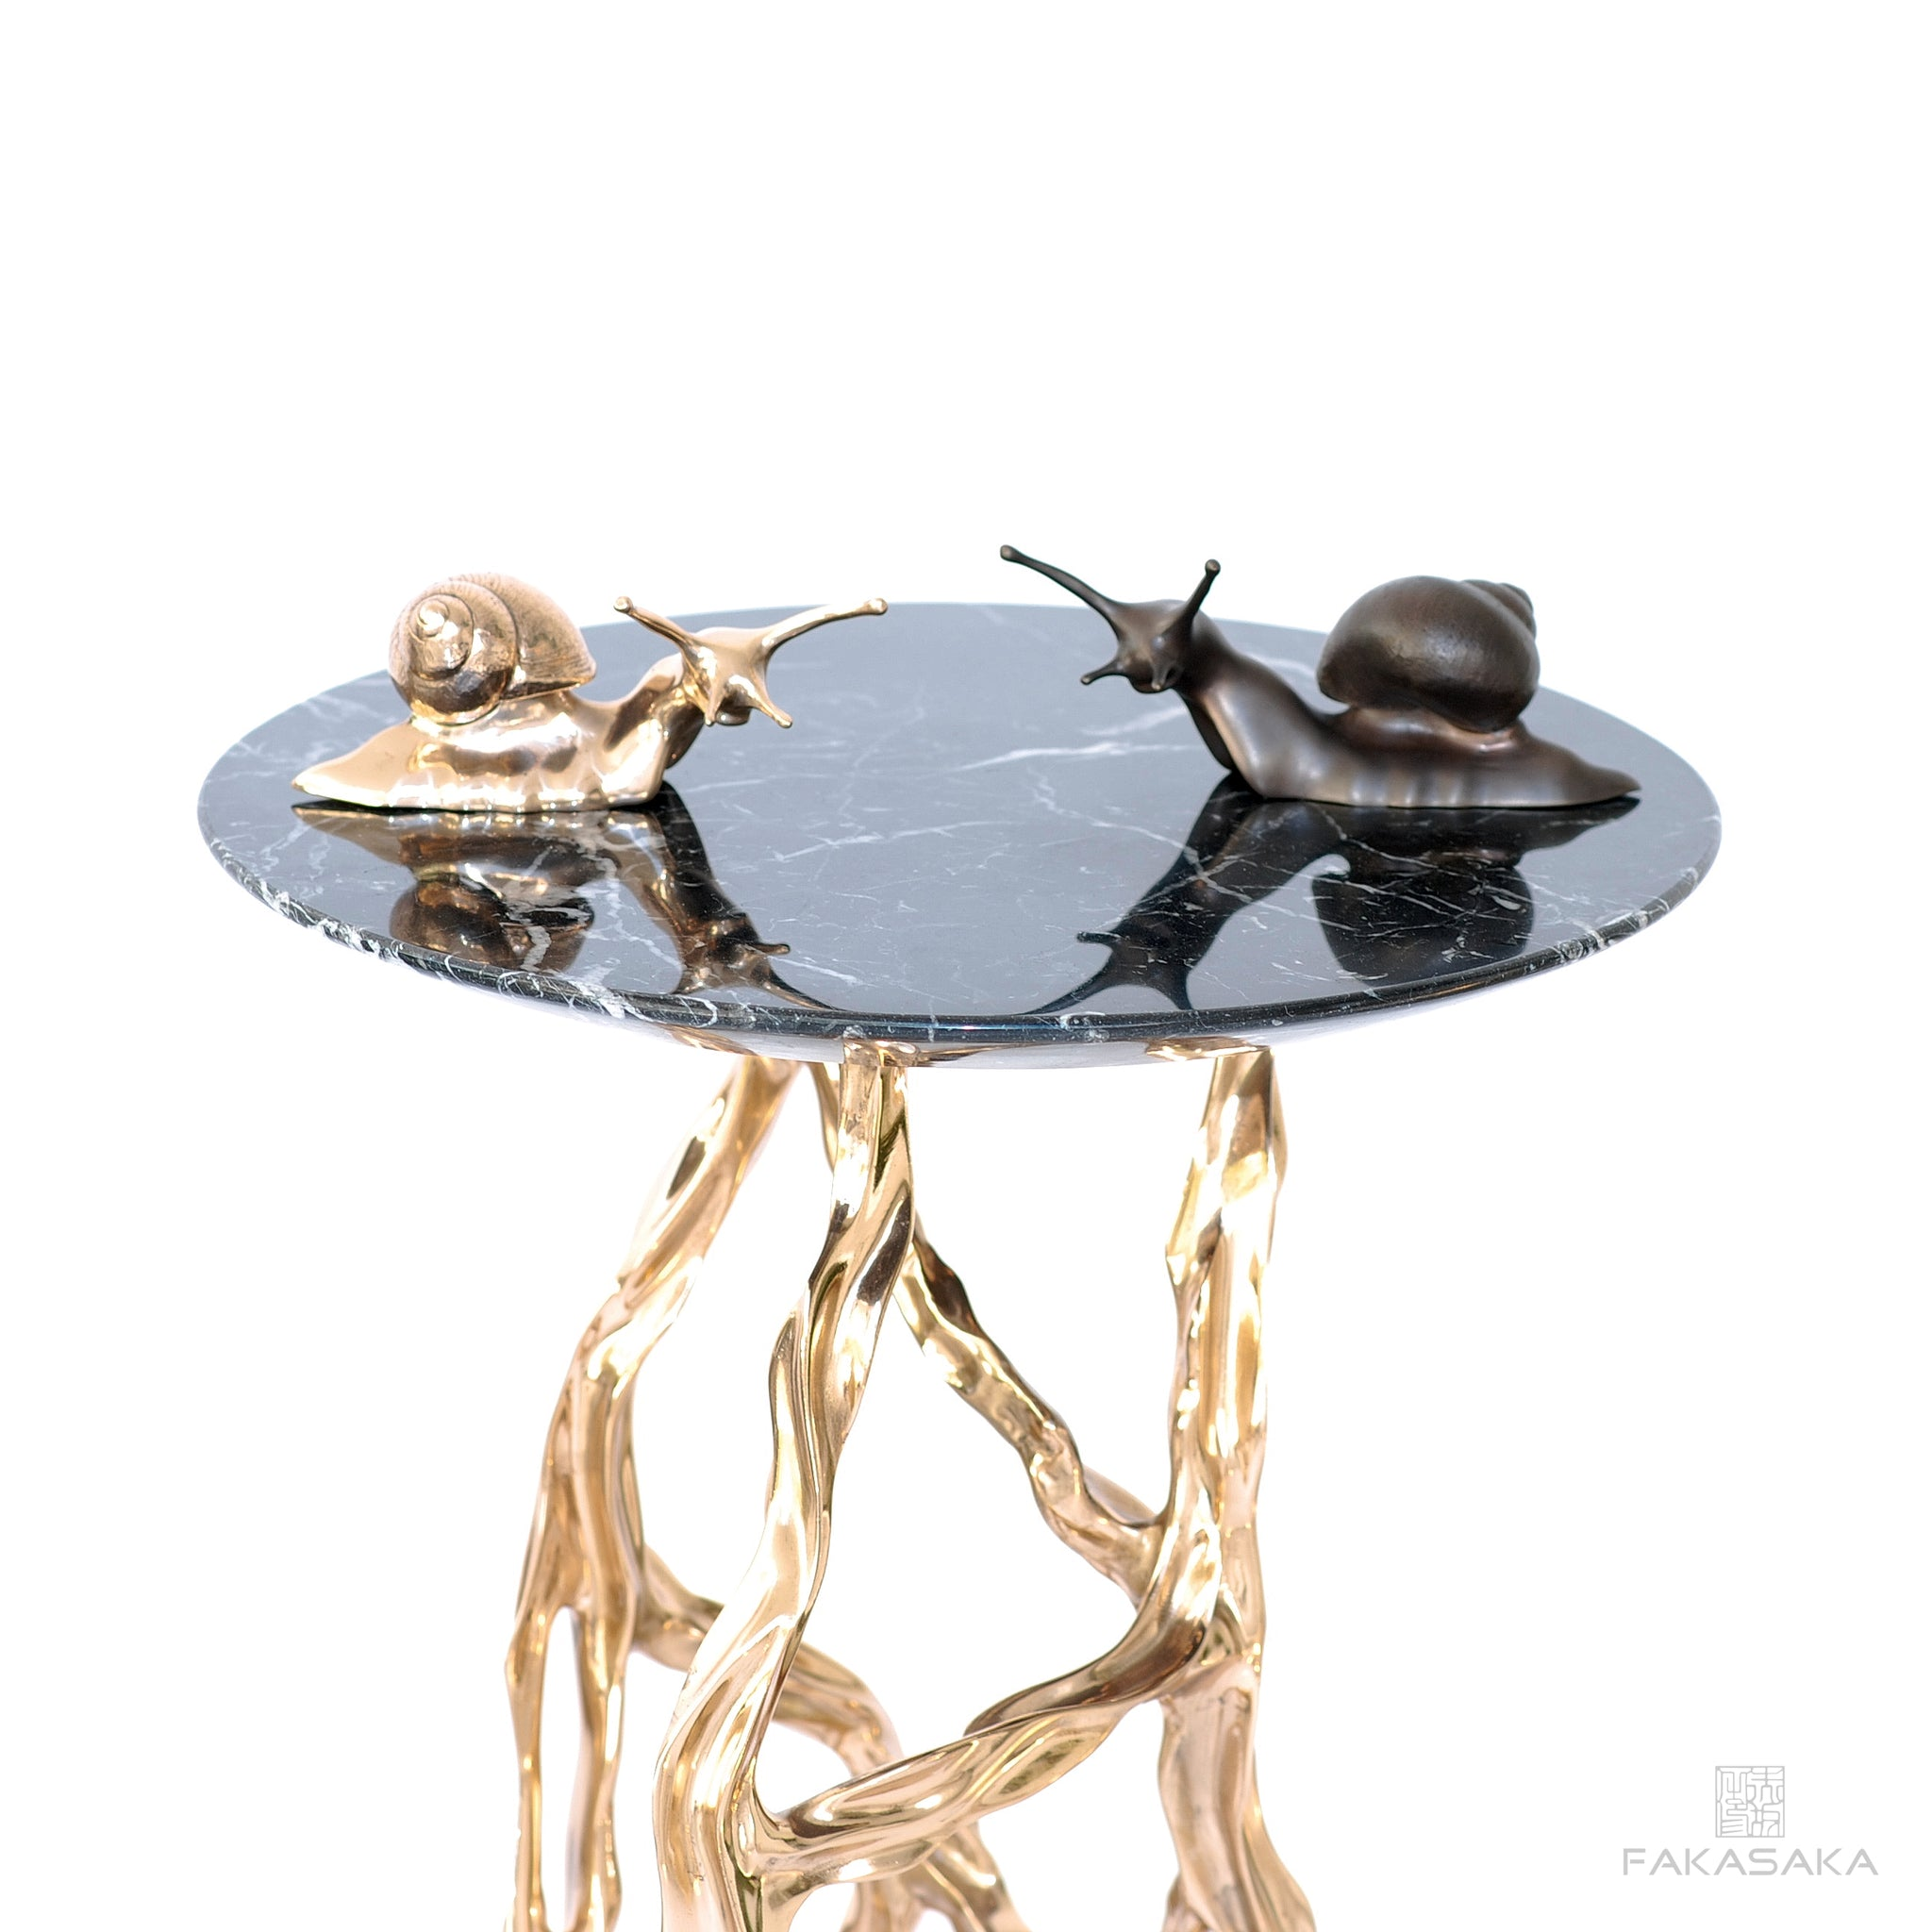 NUI SCULPTURE / PAPER WEIGHT<br><br>POLISHED BRONZE<br>BRONZE BASE